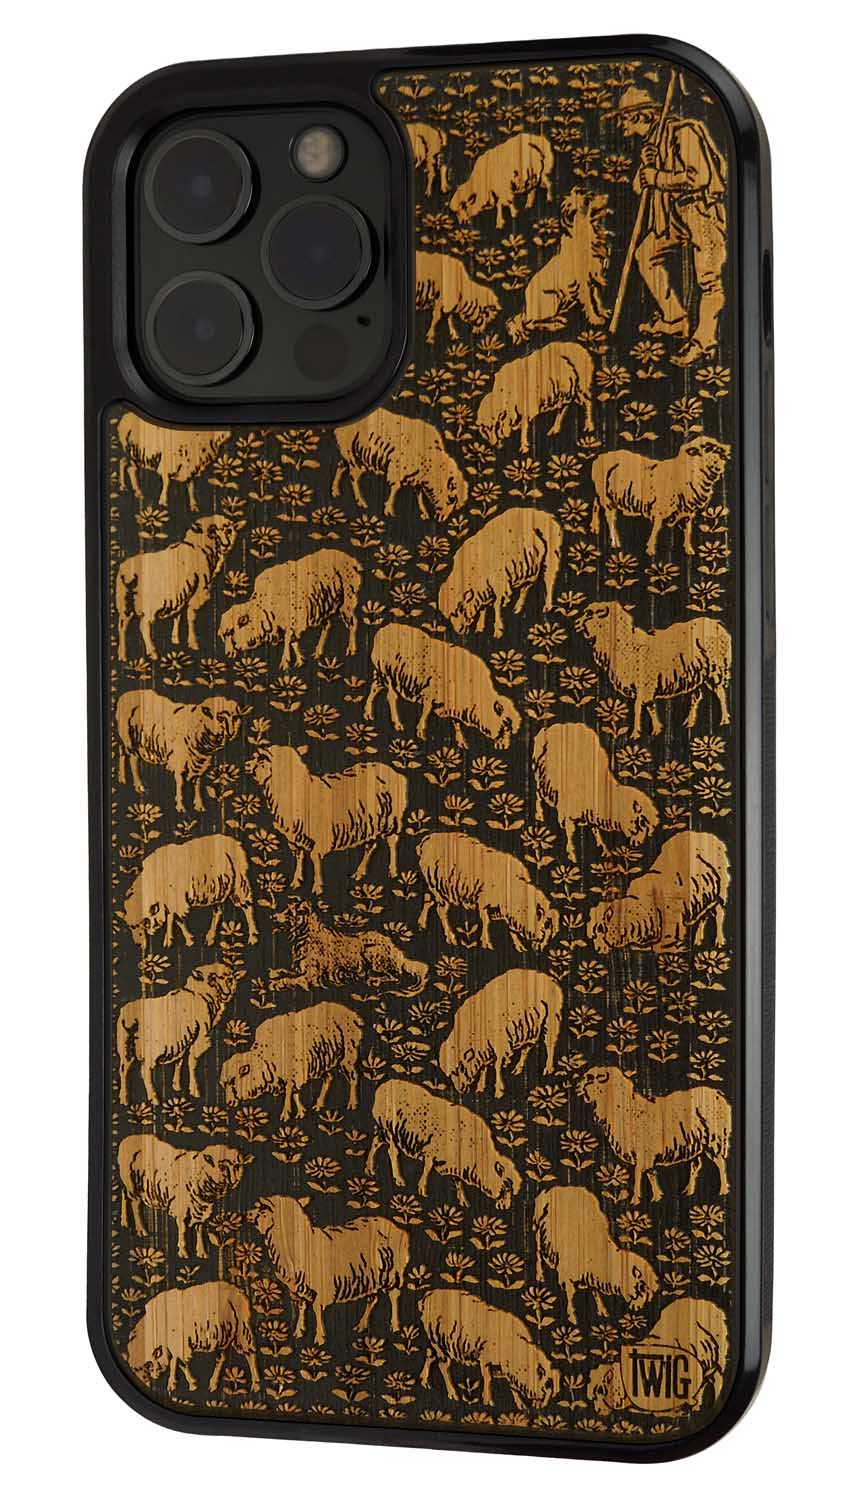 Sheepish - Case for iPhone 12/Mini/Pro/Max, Case for iPhone 12/Mini/Pro/Max - Twig Case Co.